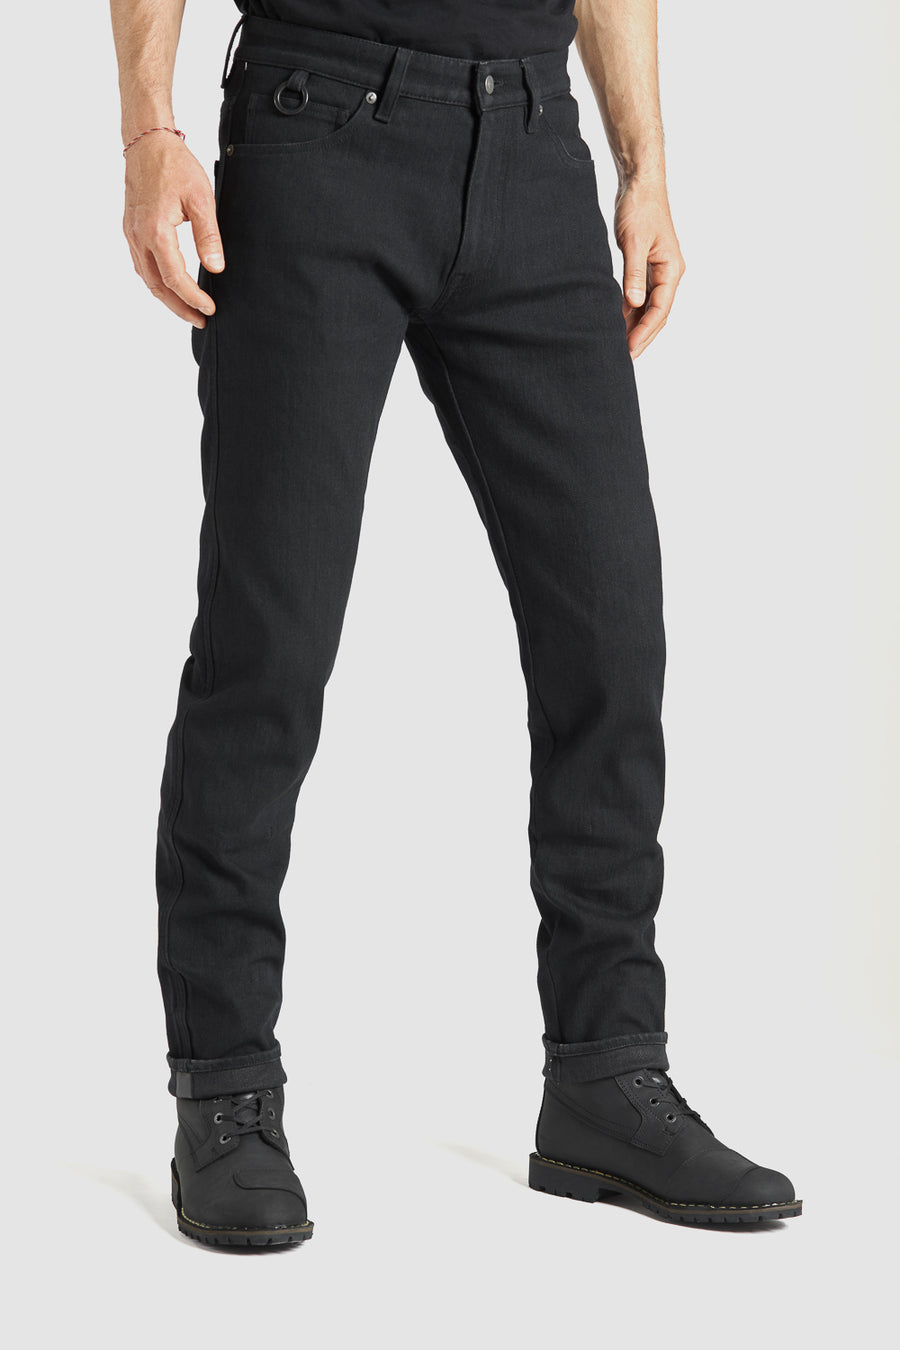 Pantalon Steel Black 02 Dyneema - coupe slim